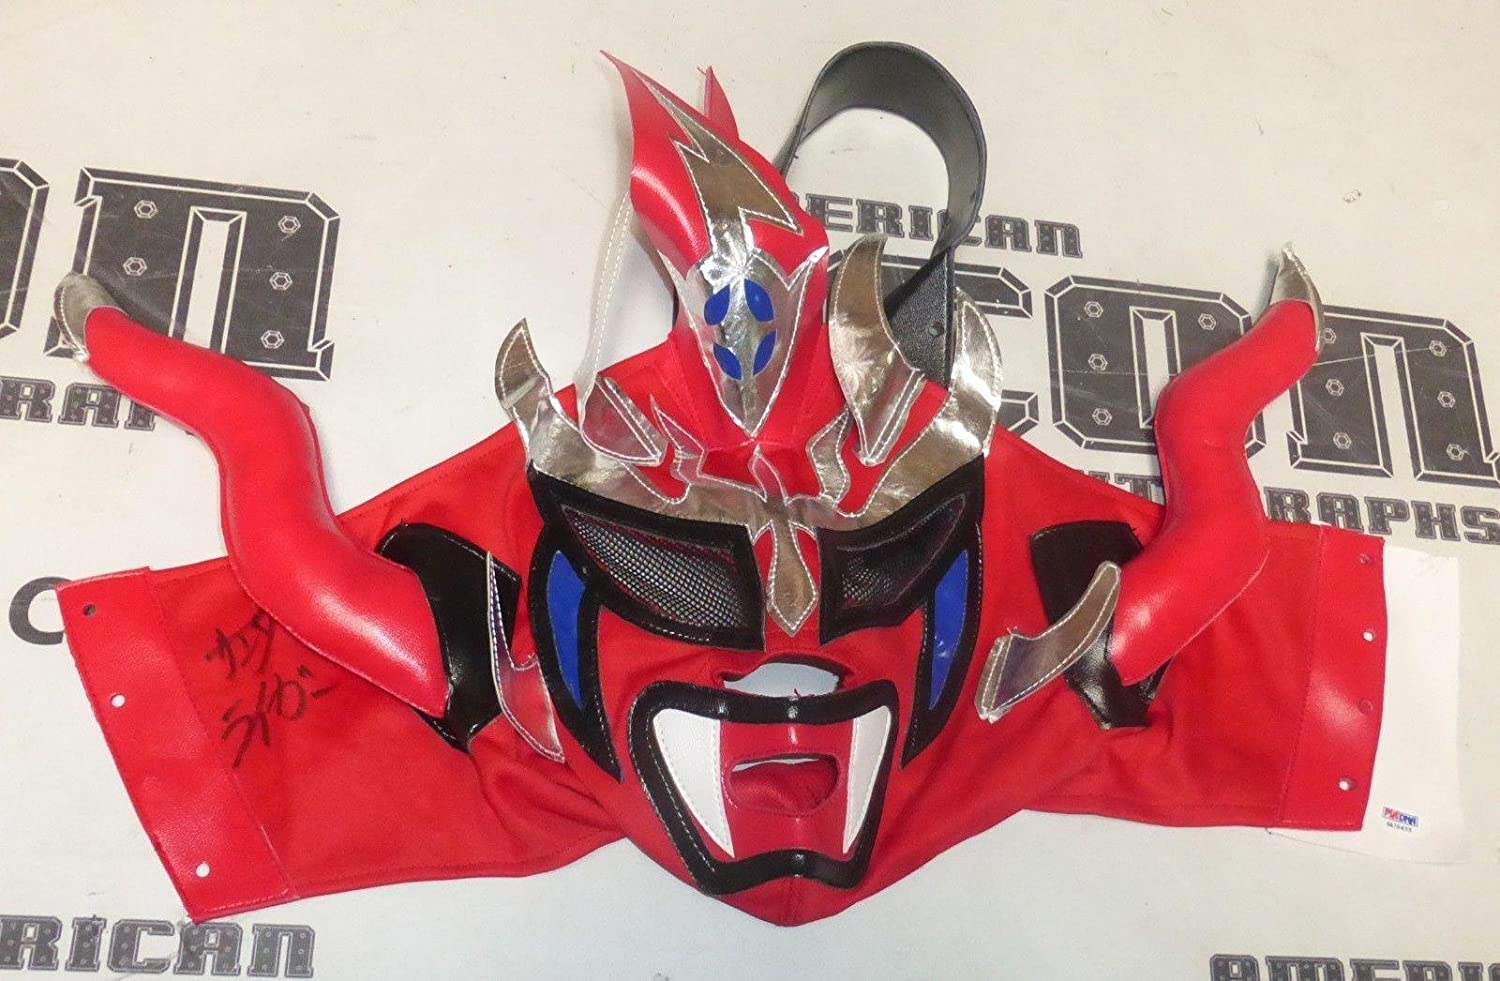 Jushin Thunder Liger Signed Mask COA WWE WCW New Japan Wrestling Auto'd - PSA/DNA Certified - Autographed Wrestling Miscellaneous Items Sports Memorabilia